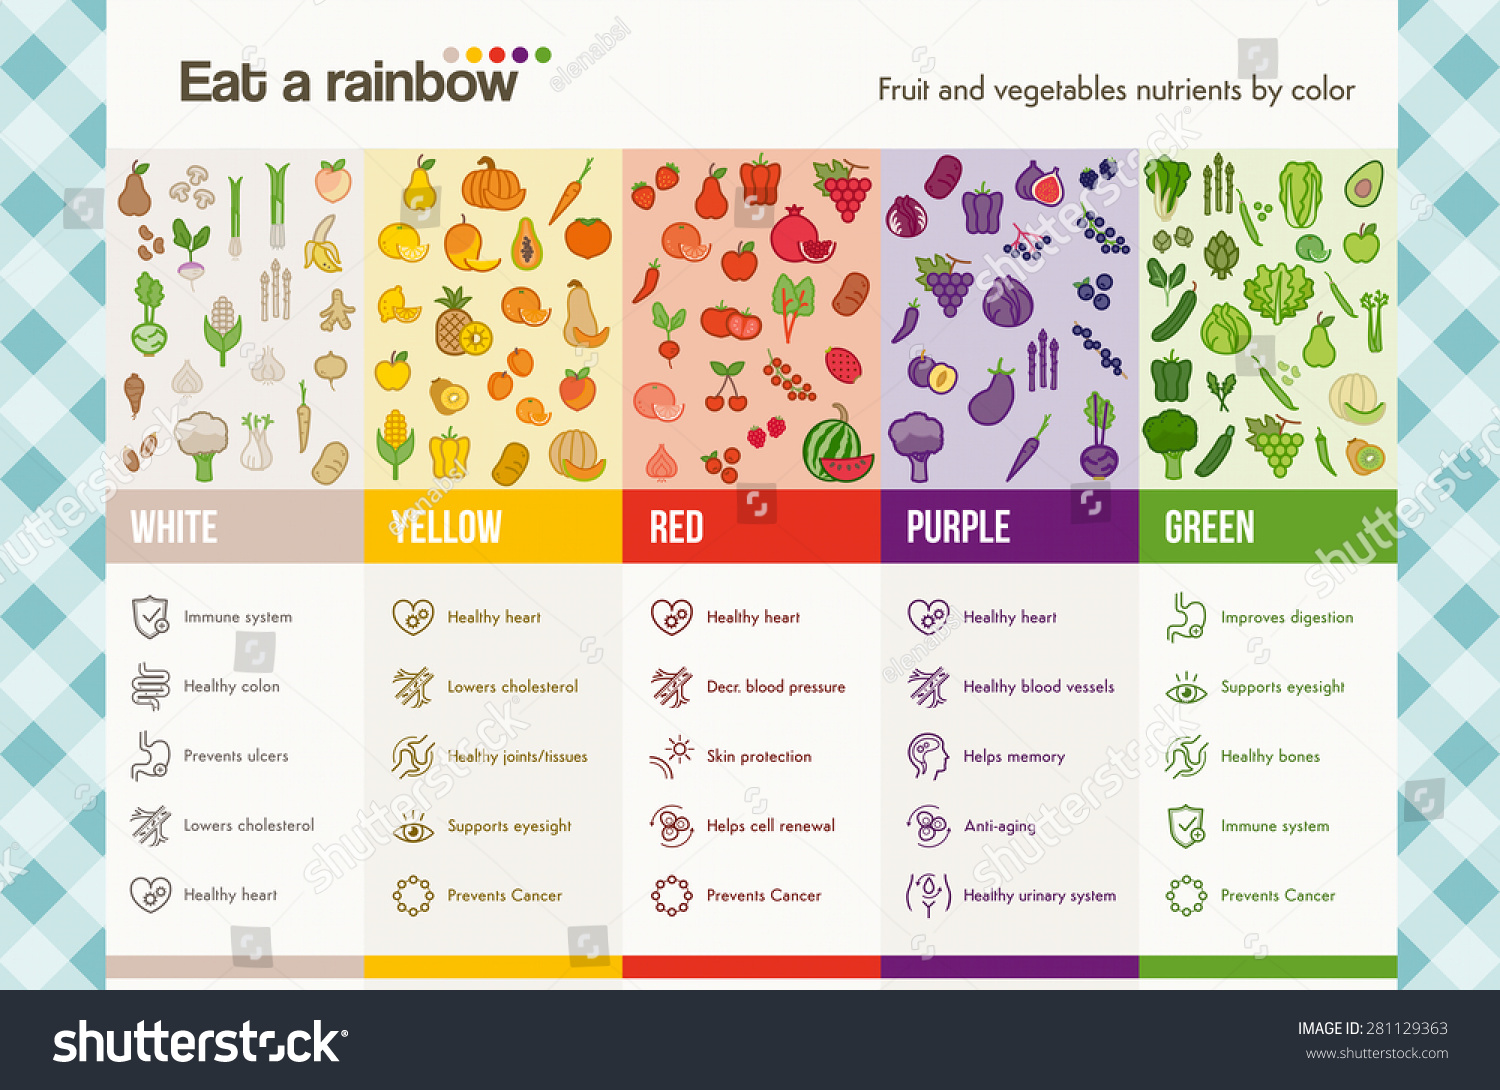 Eat a rainbow of fruits and vegetables infographics with food and health icons set dieting and nutrition concept